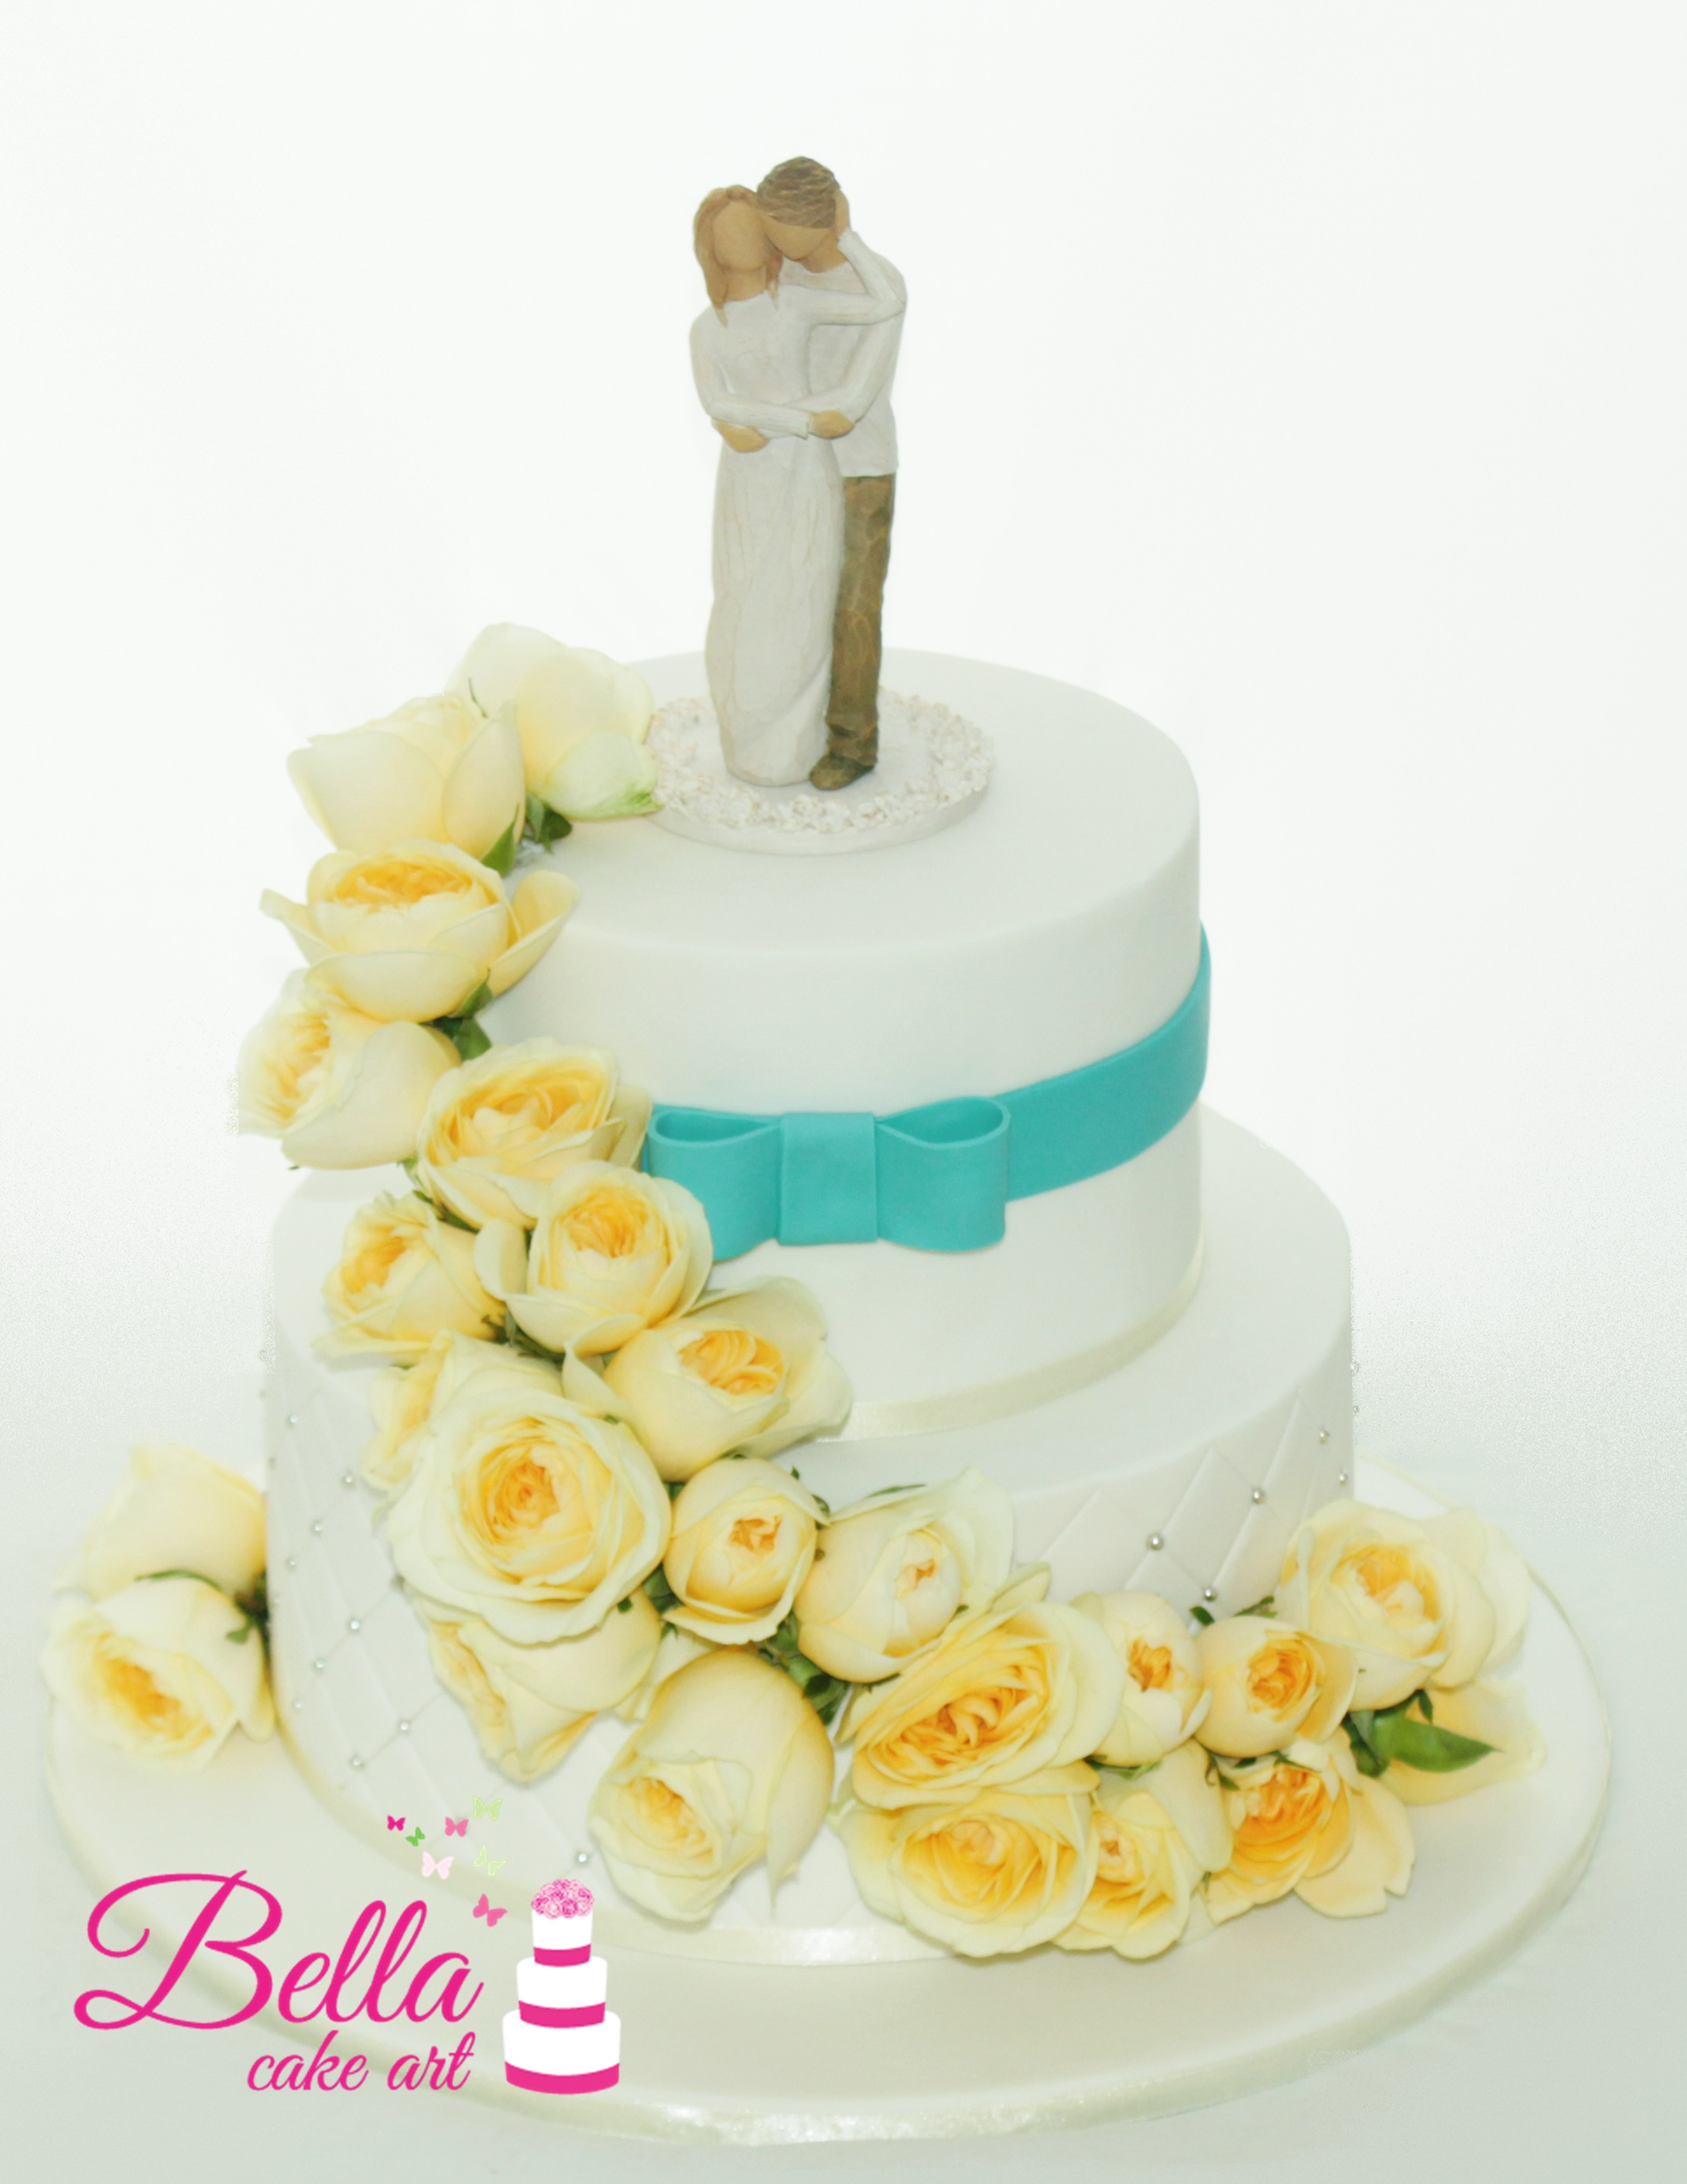 Two Tier quilted cake with bow and fresh flowers